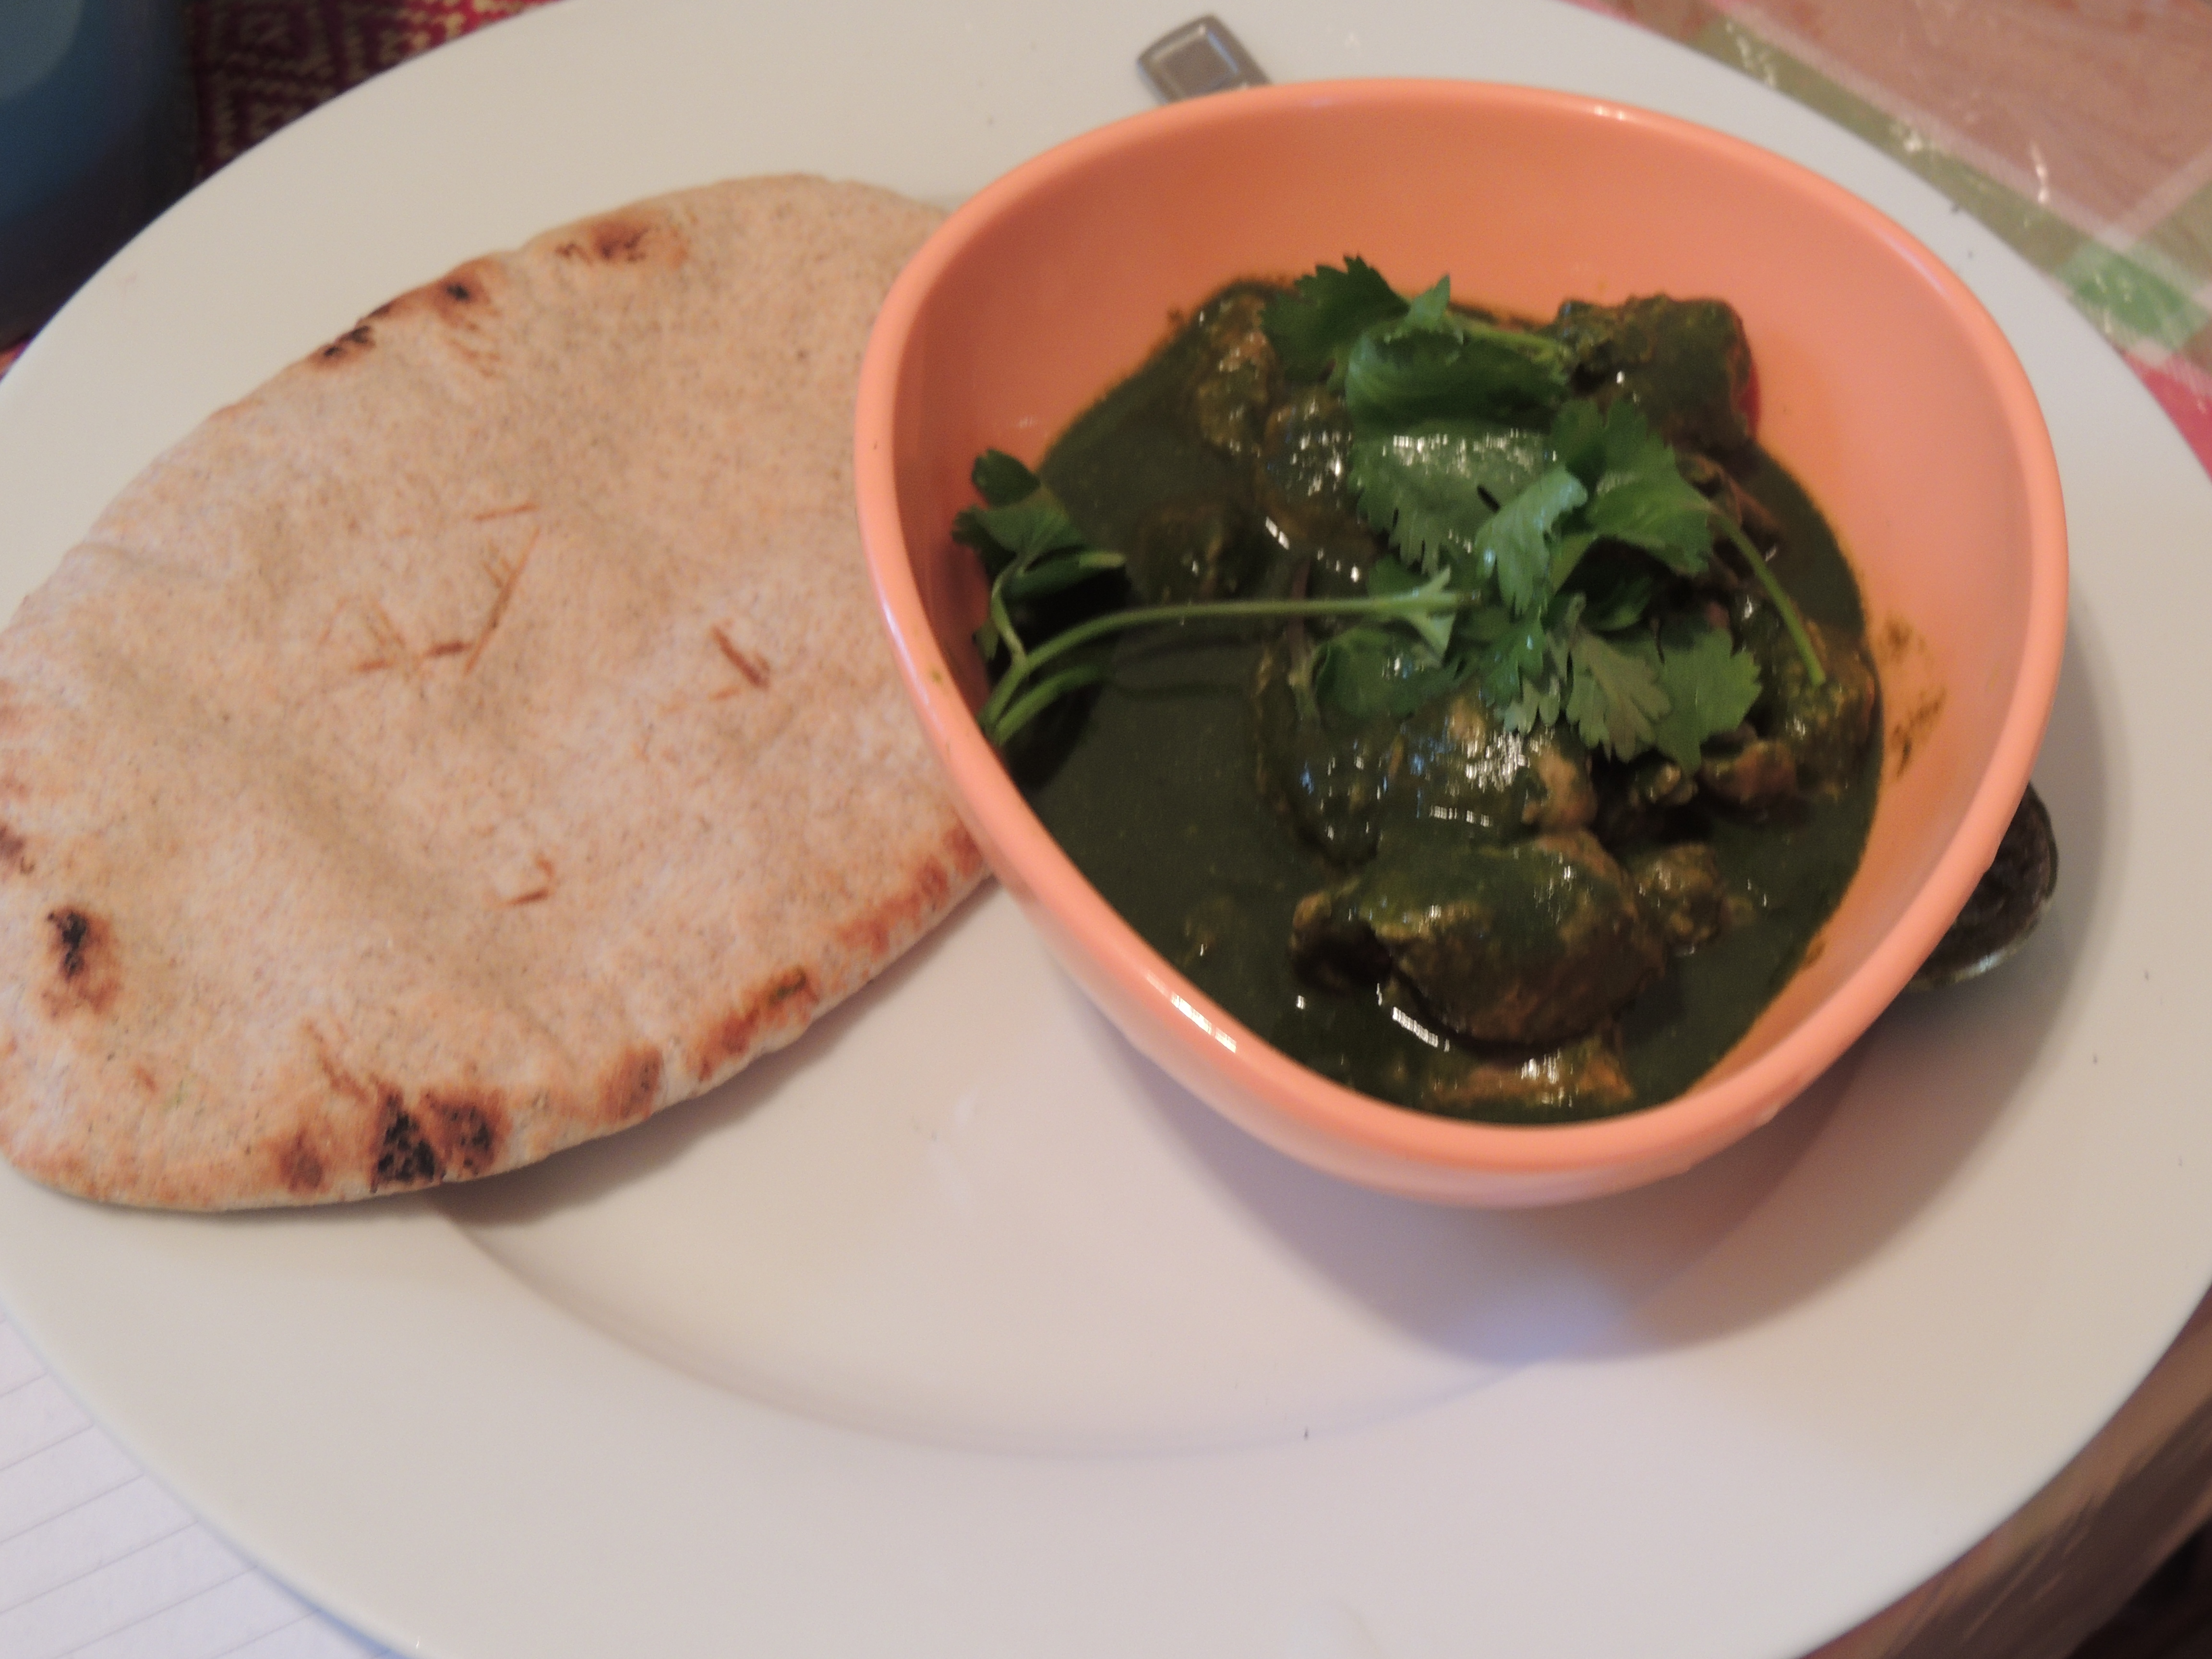 Turkey in green sauce with wholemeal pitta bread